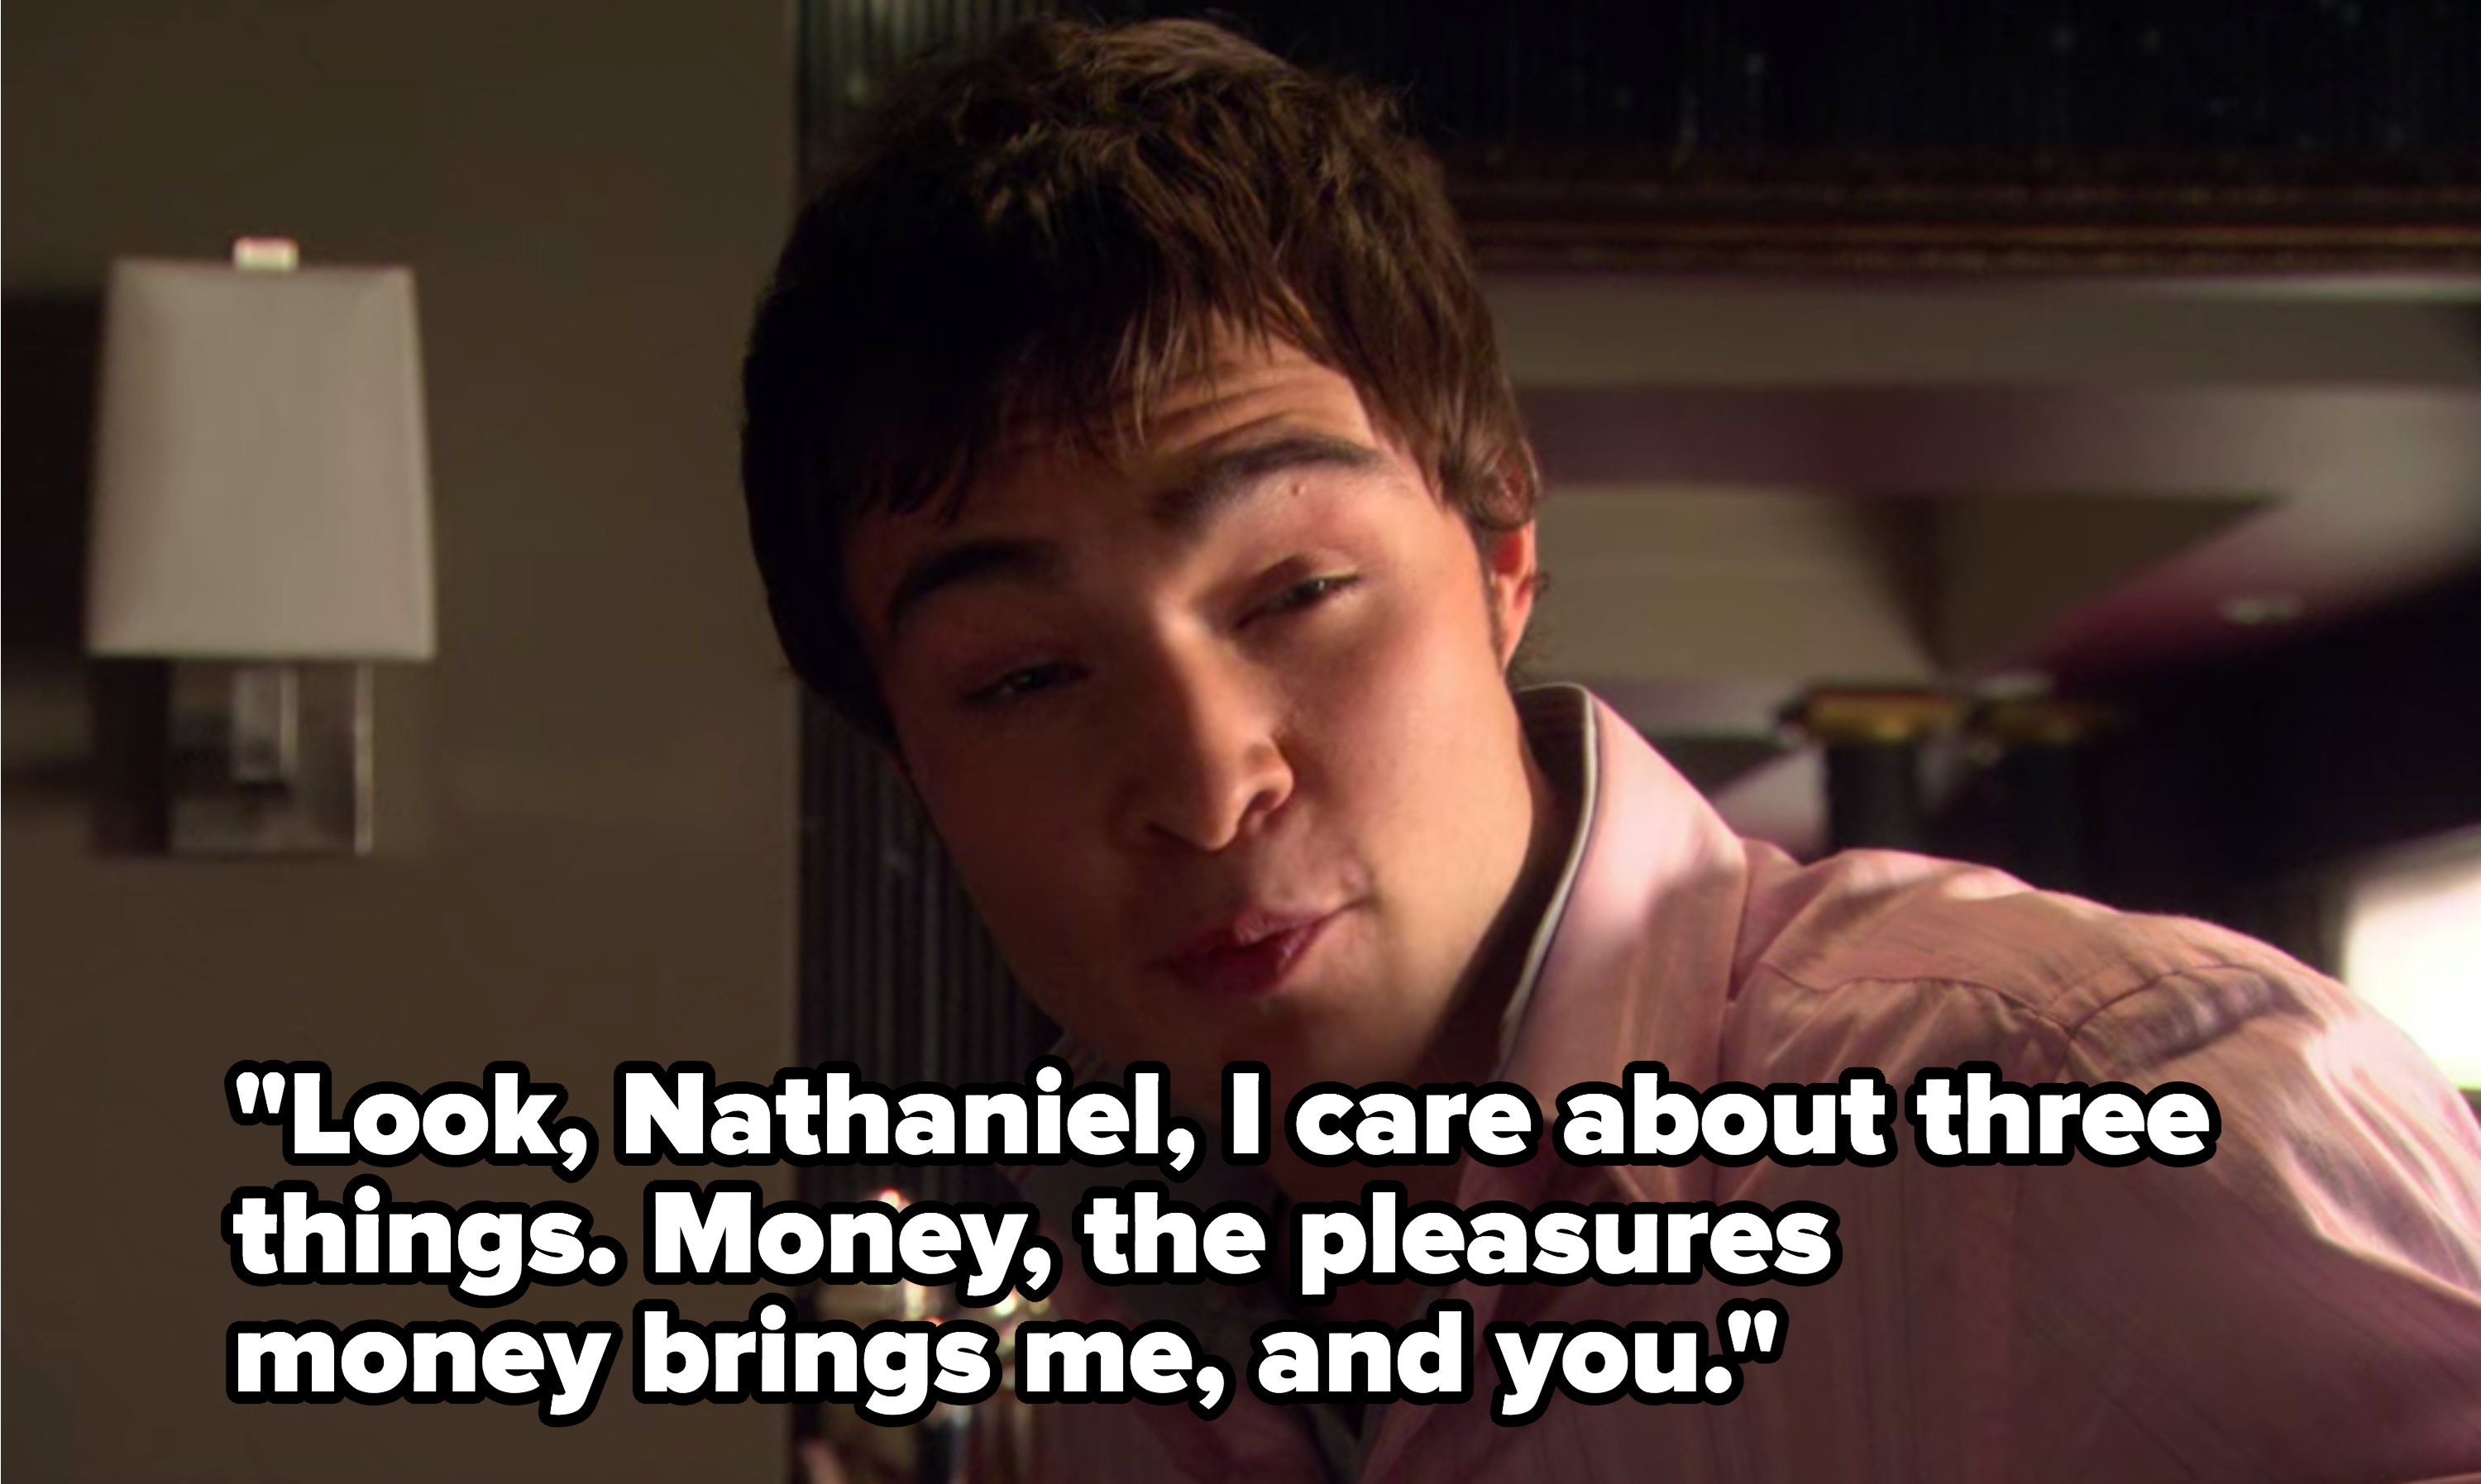 Chuck says he cares about three things: money, the pleasures money brings him, and Nate